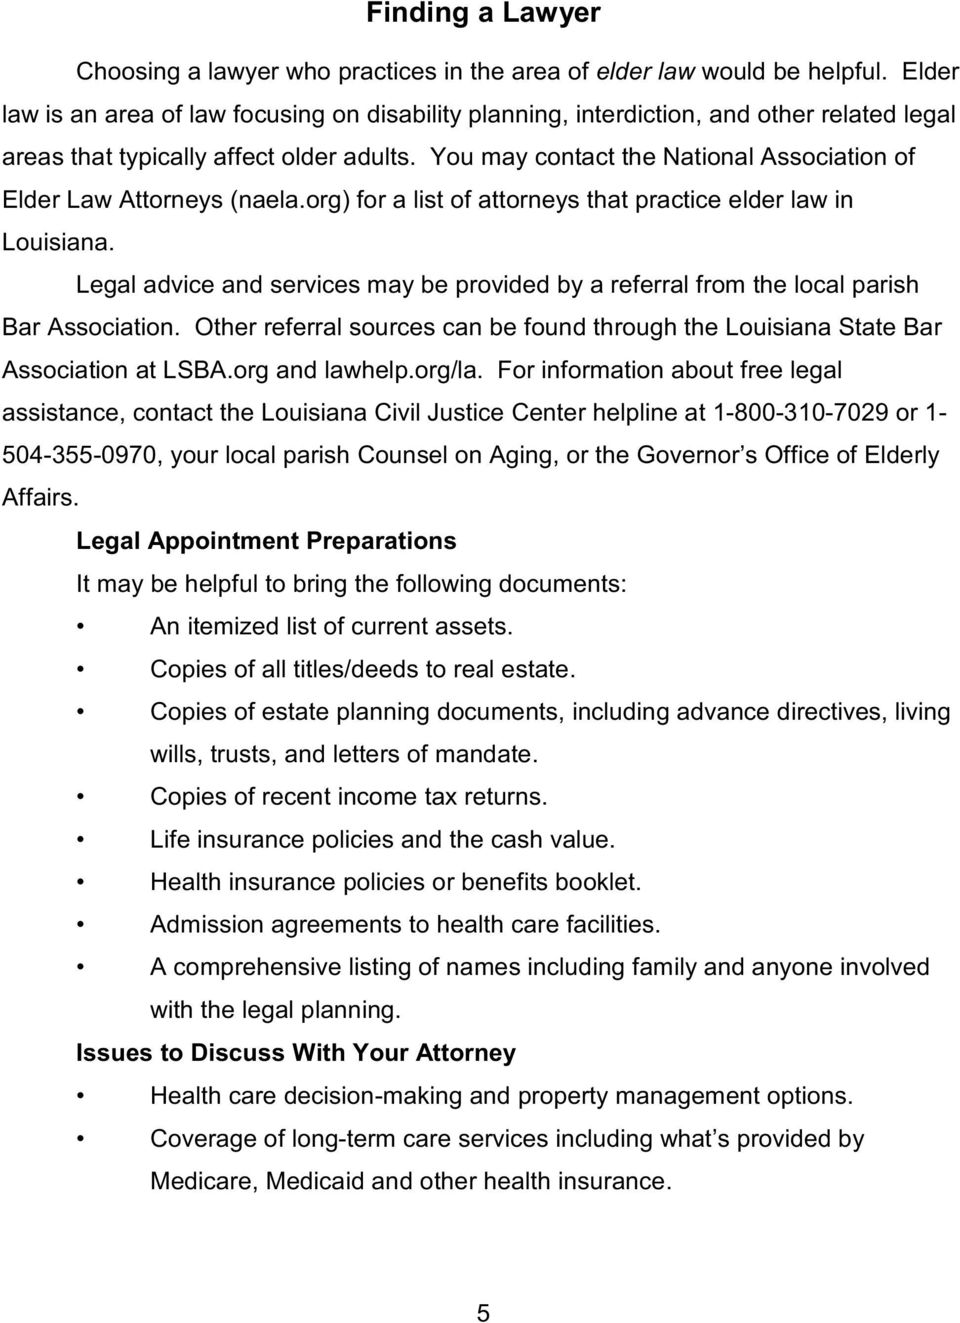 You may contact the National Association of Elder Law Attorneys (naela.org) for a list of attorneys that practice elder law in Louisiana.